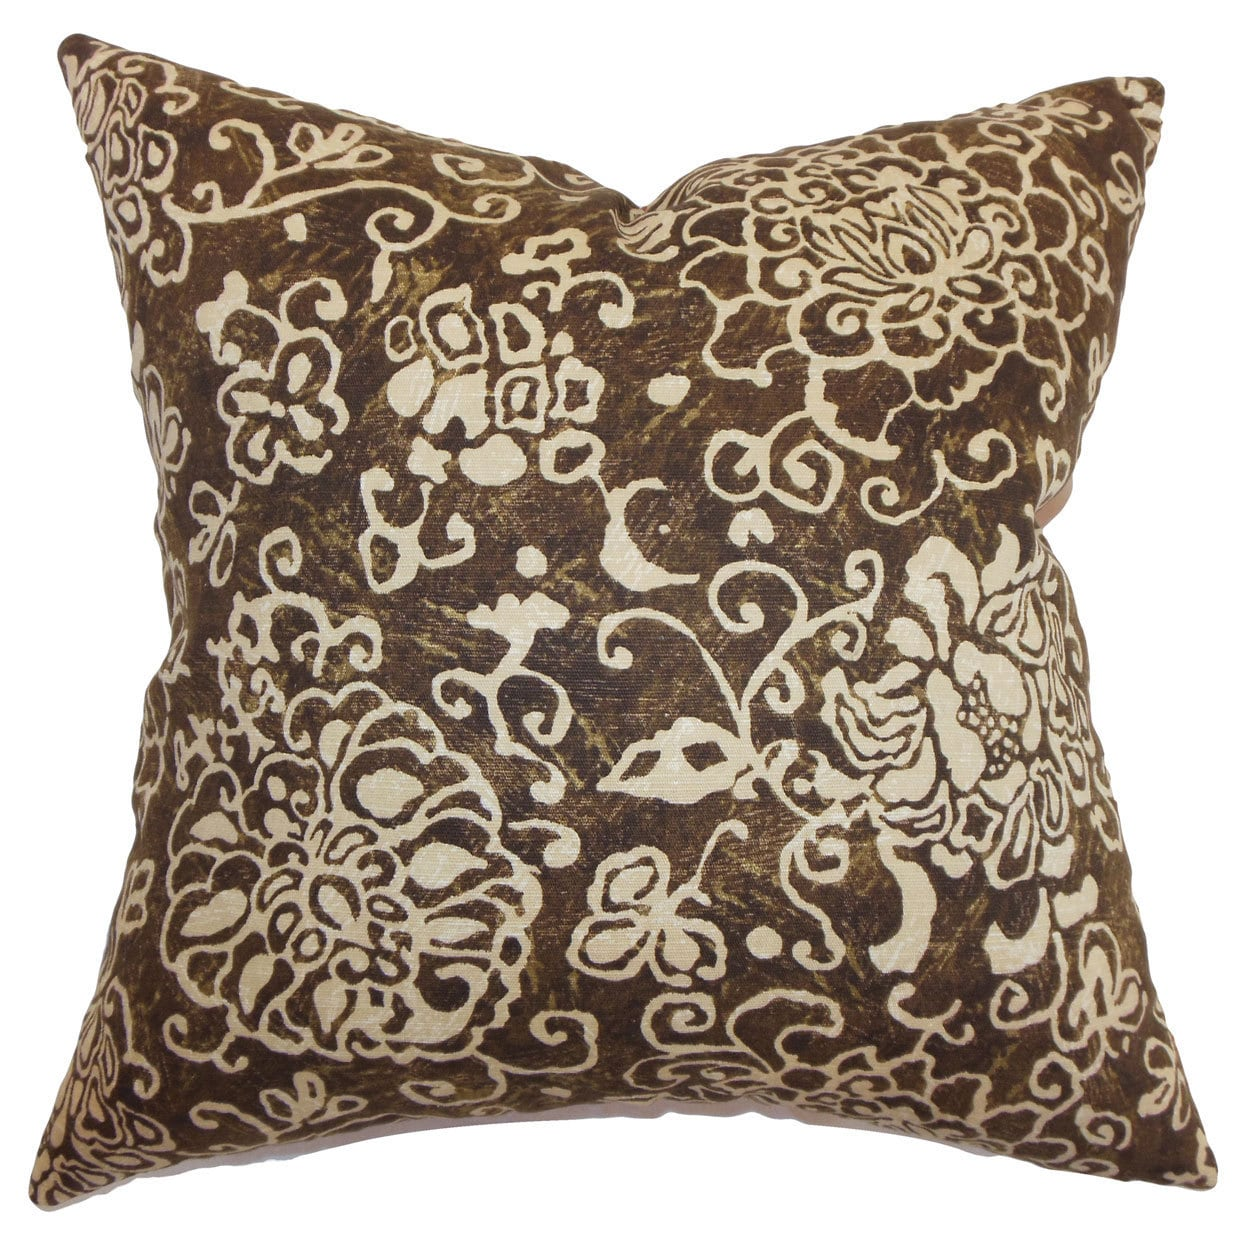 The Pillow Collection Jaffna Floral 22-inch Down Feather Throw Pillow Chocolate